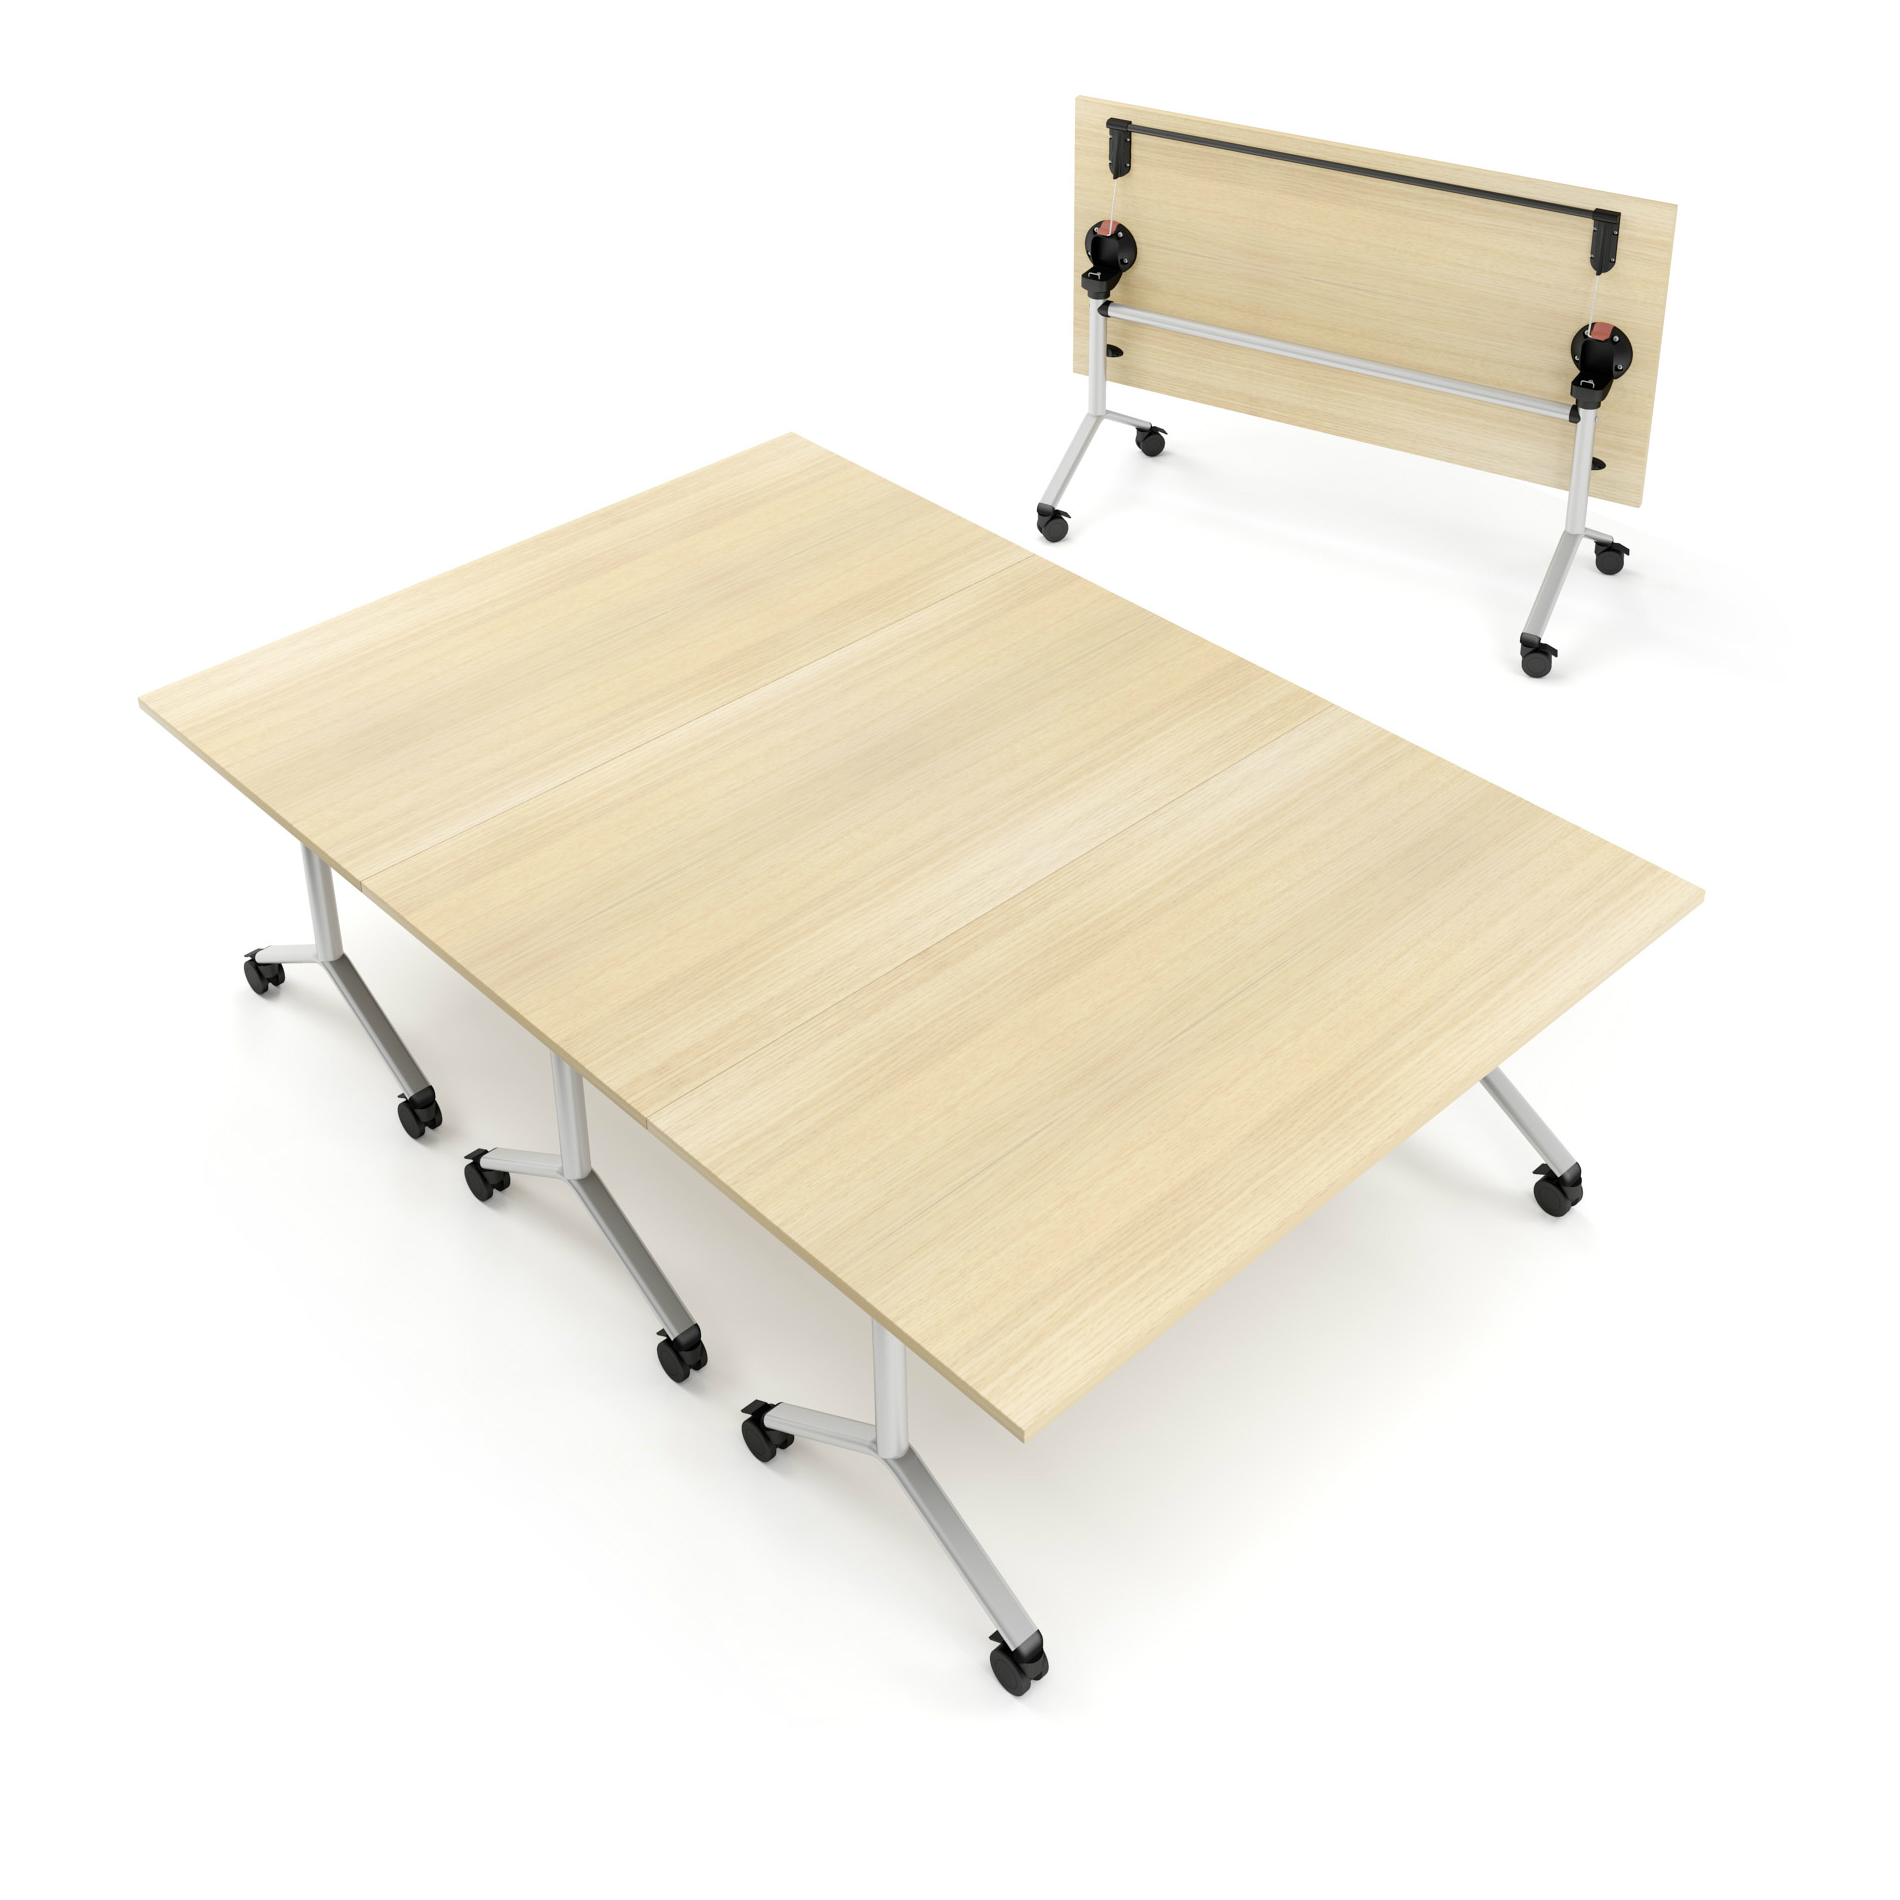 Flip Top Modular Table Hsi Office Furniture New Office Furniture And Renovation